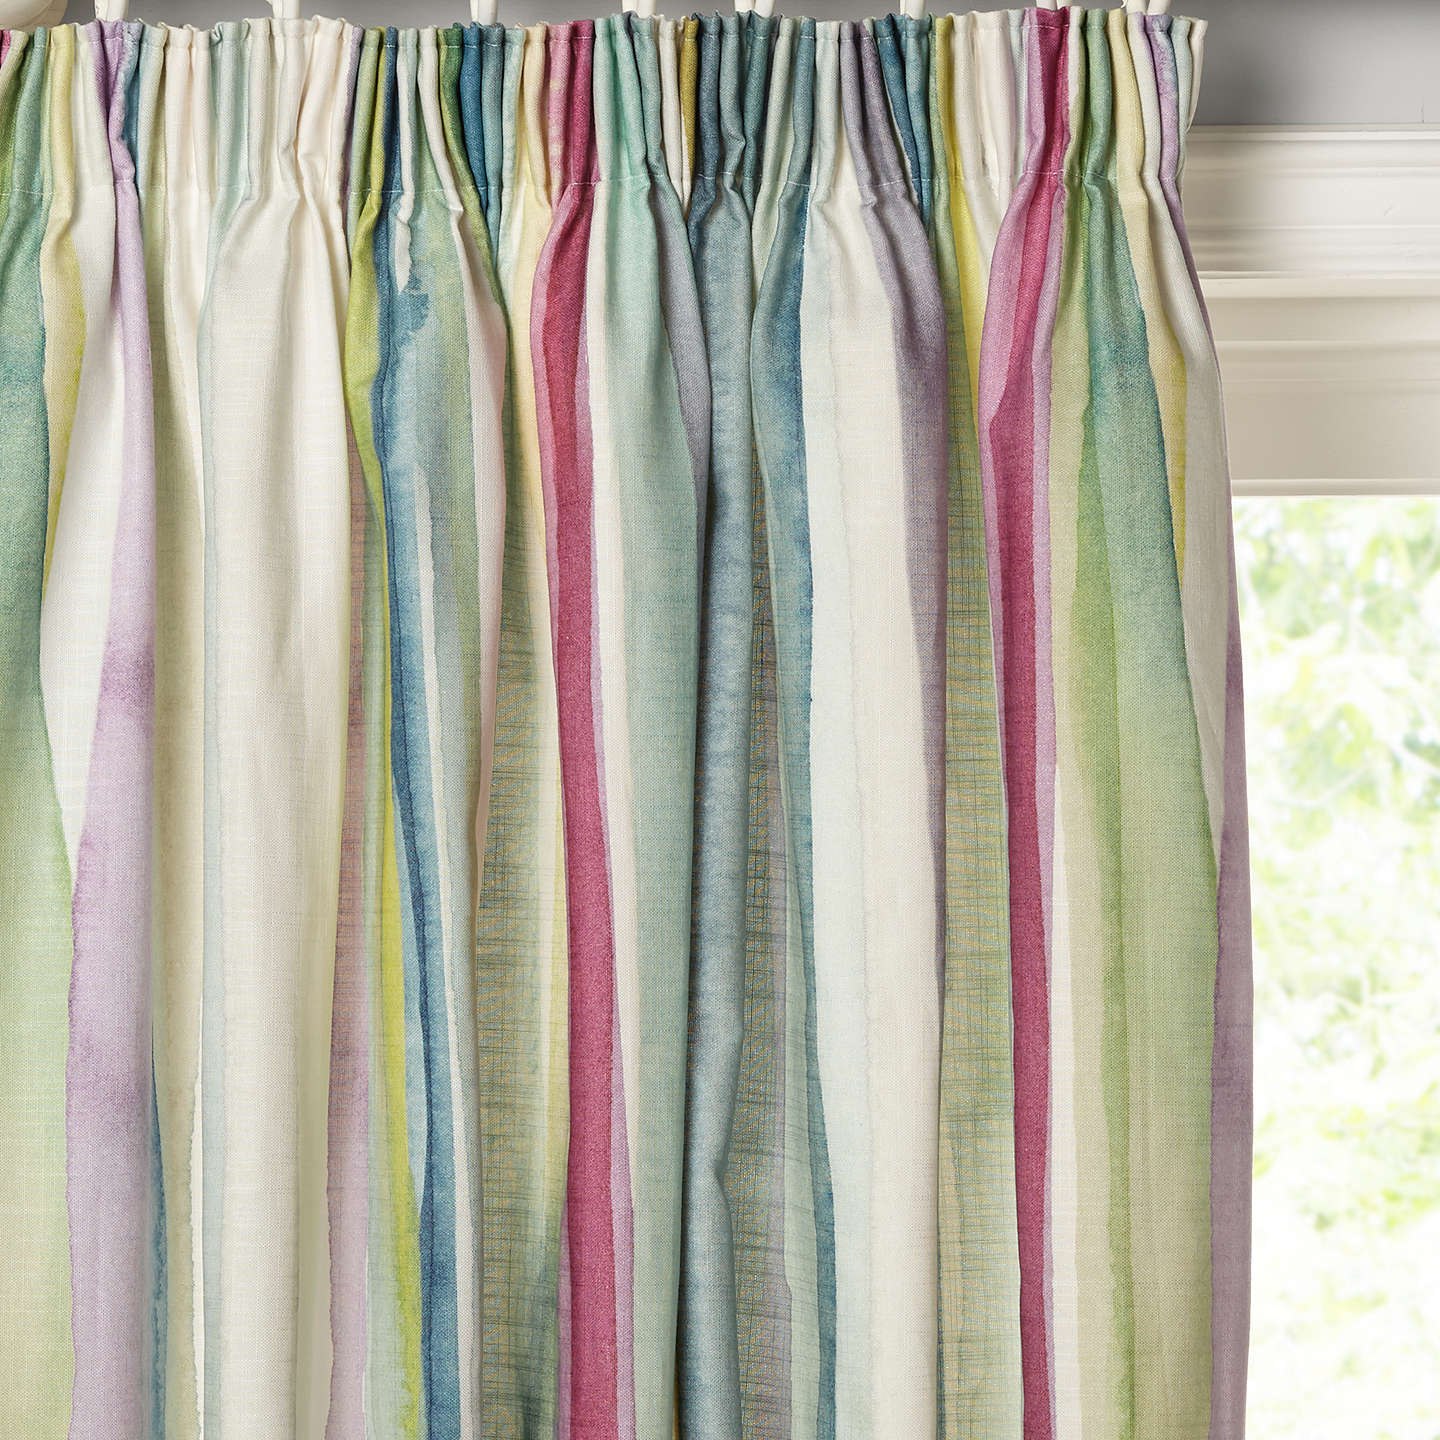 Bluebellgray Lomond Pair Lined Pencil Pleat Curtains by Bluebellgray